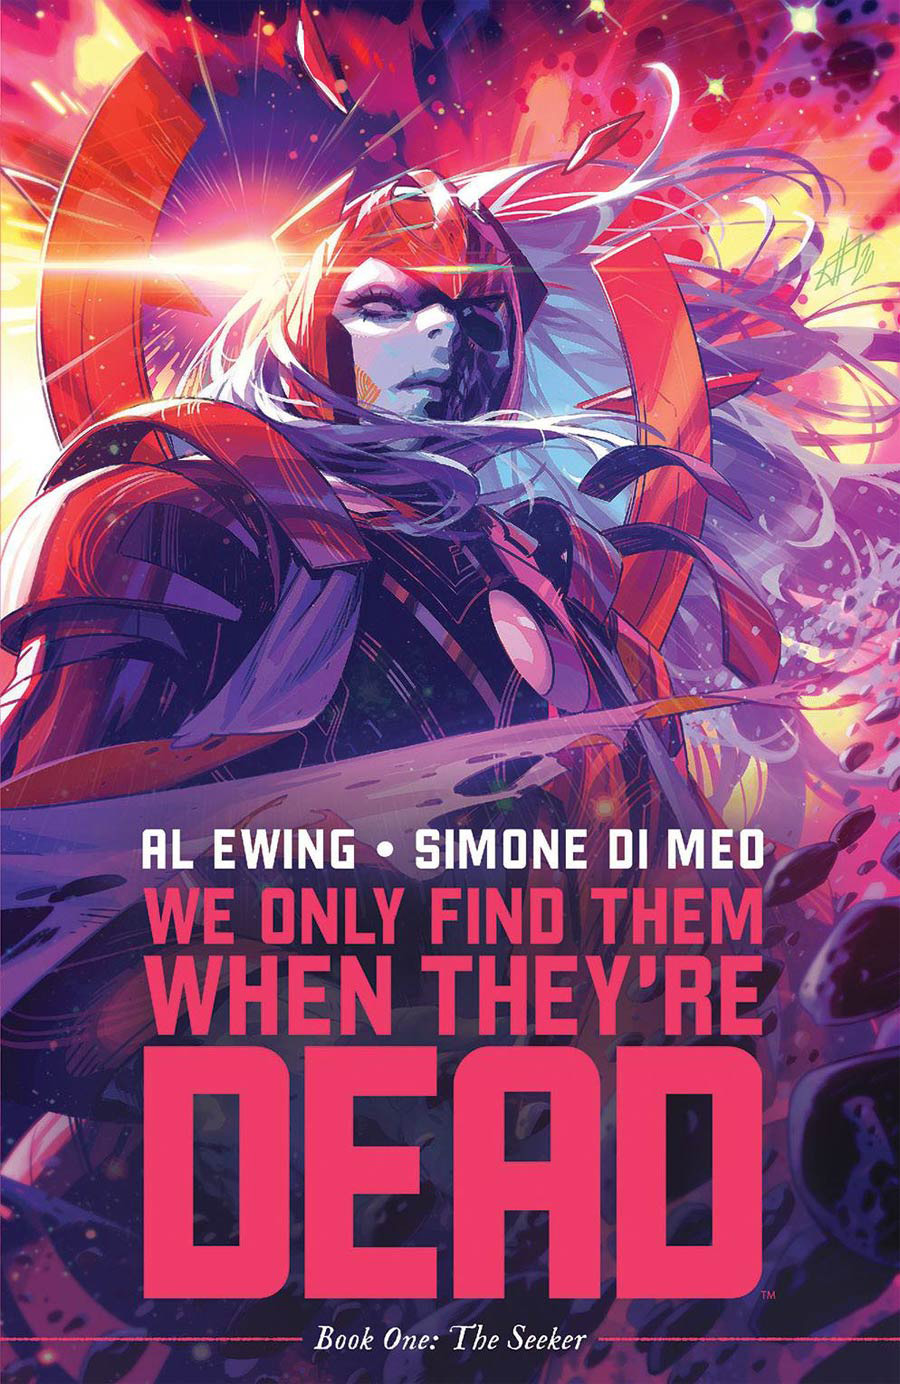 We Only Find Them When Theyre Dead Vol 1 The Seeker TP Discover Now Edition